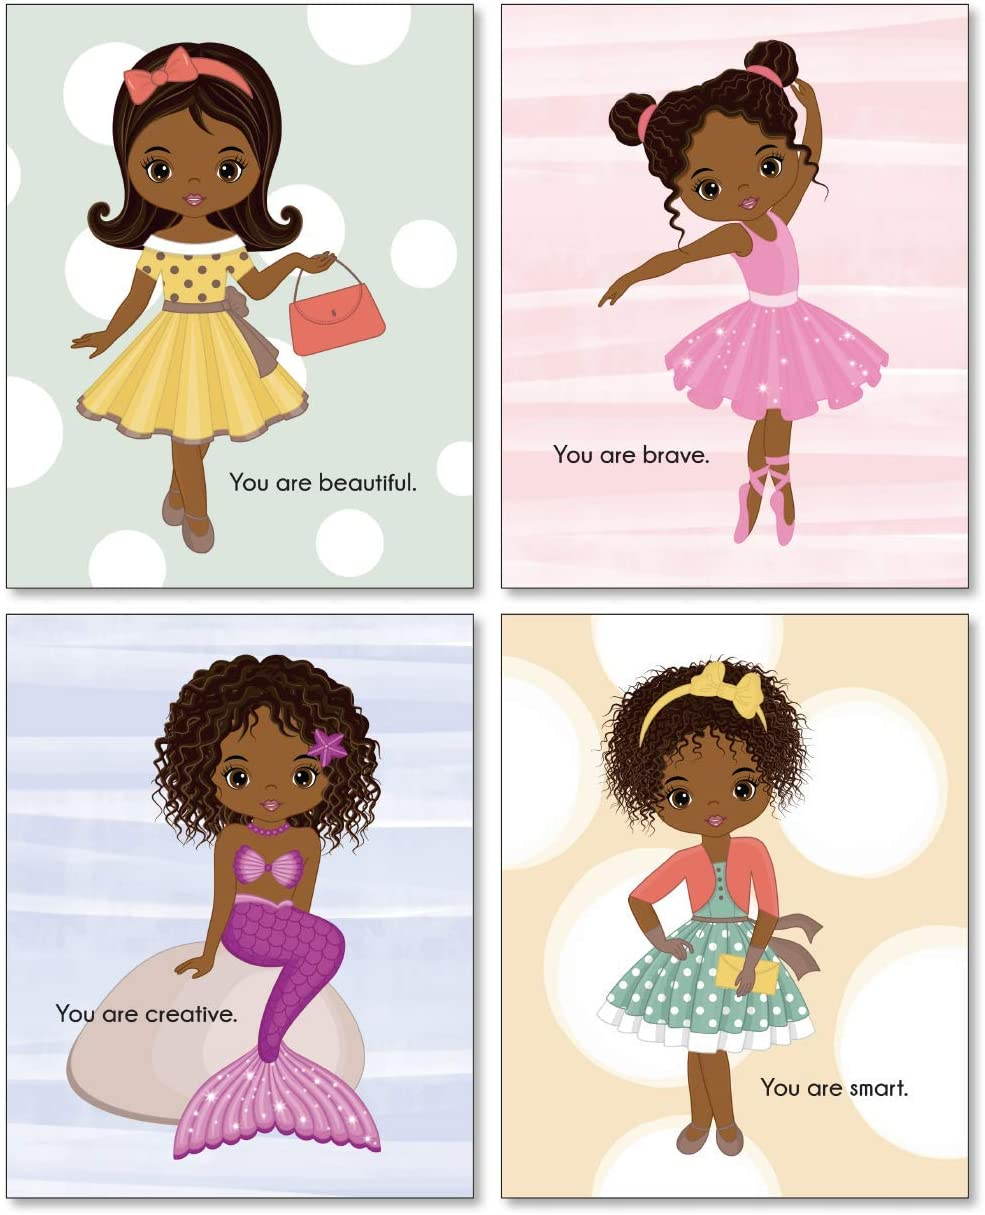 Confetti Fox Black Little Girl Wall Art, Motivational Positive Affirmations, African American Toddler Room Quotes Posters, Beauty Magic Fashion Ballerina Mermaid Decor (8x10 Unframed Set of 4 Prints)